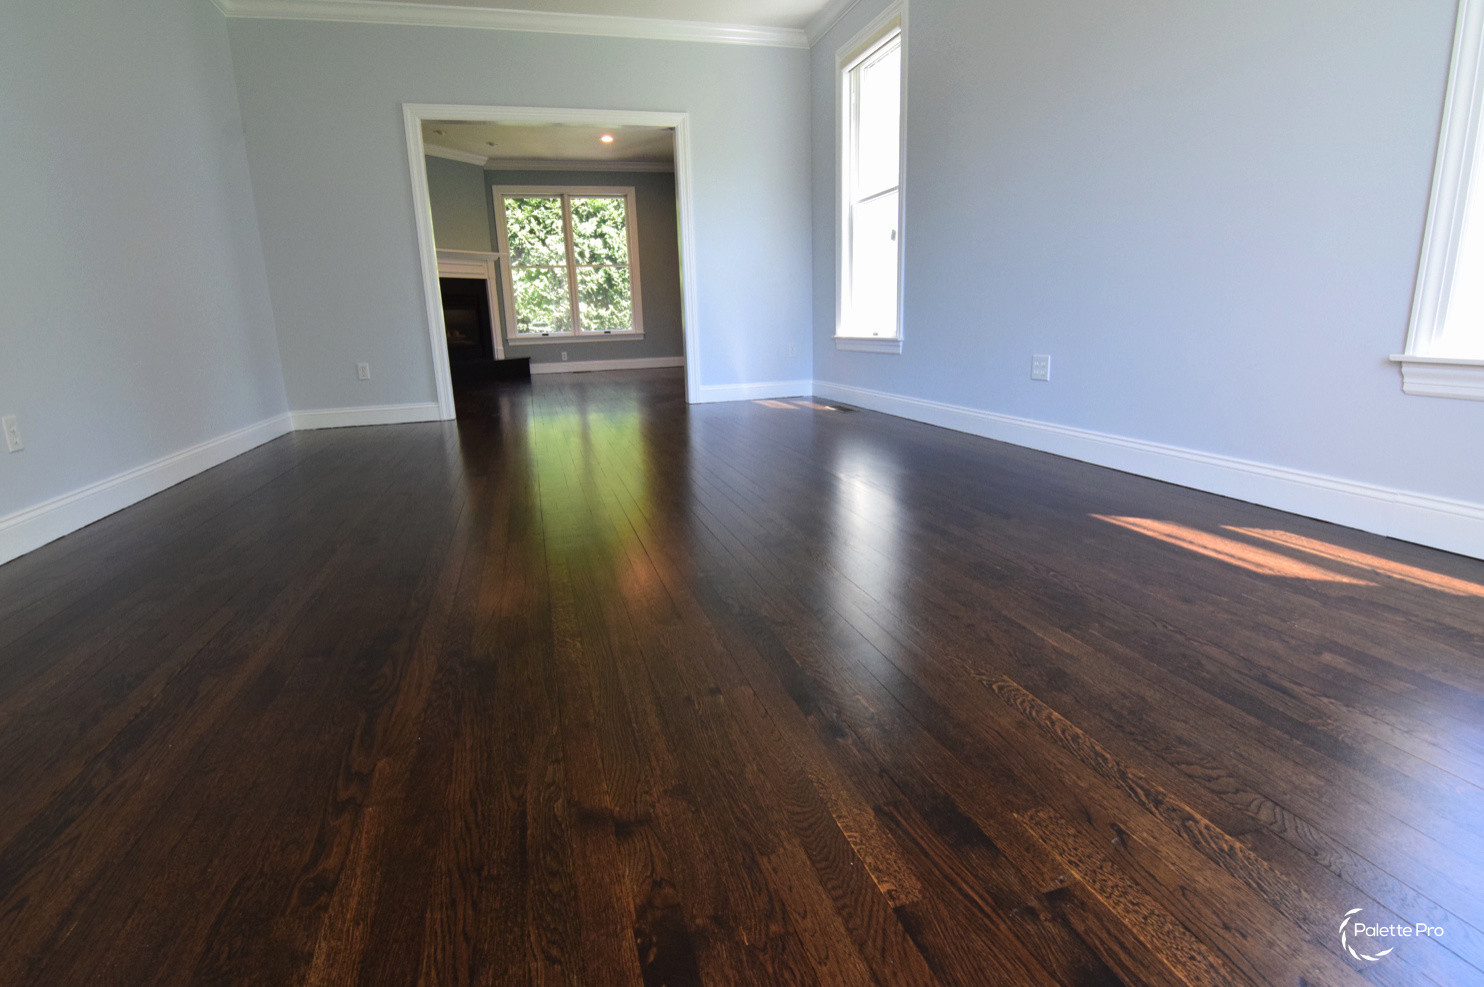 how to repair hardwood floor buckling of hardwood floor refinishing archives wlcu in hardwood floor repair near me awesome hardwood floor refinishing hardwood floor repair